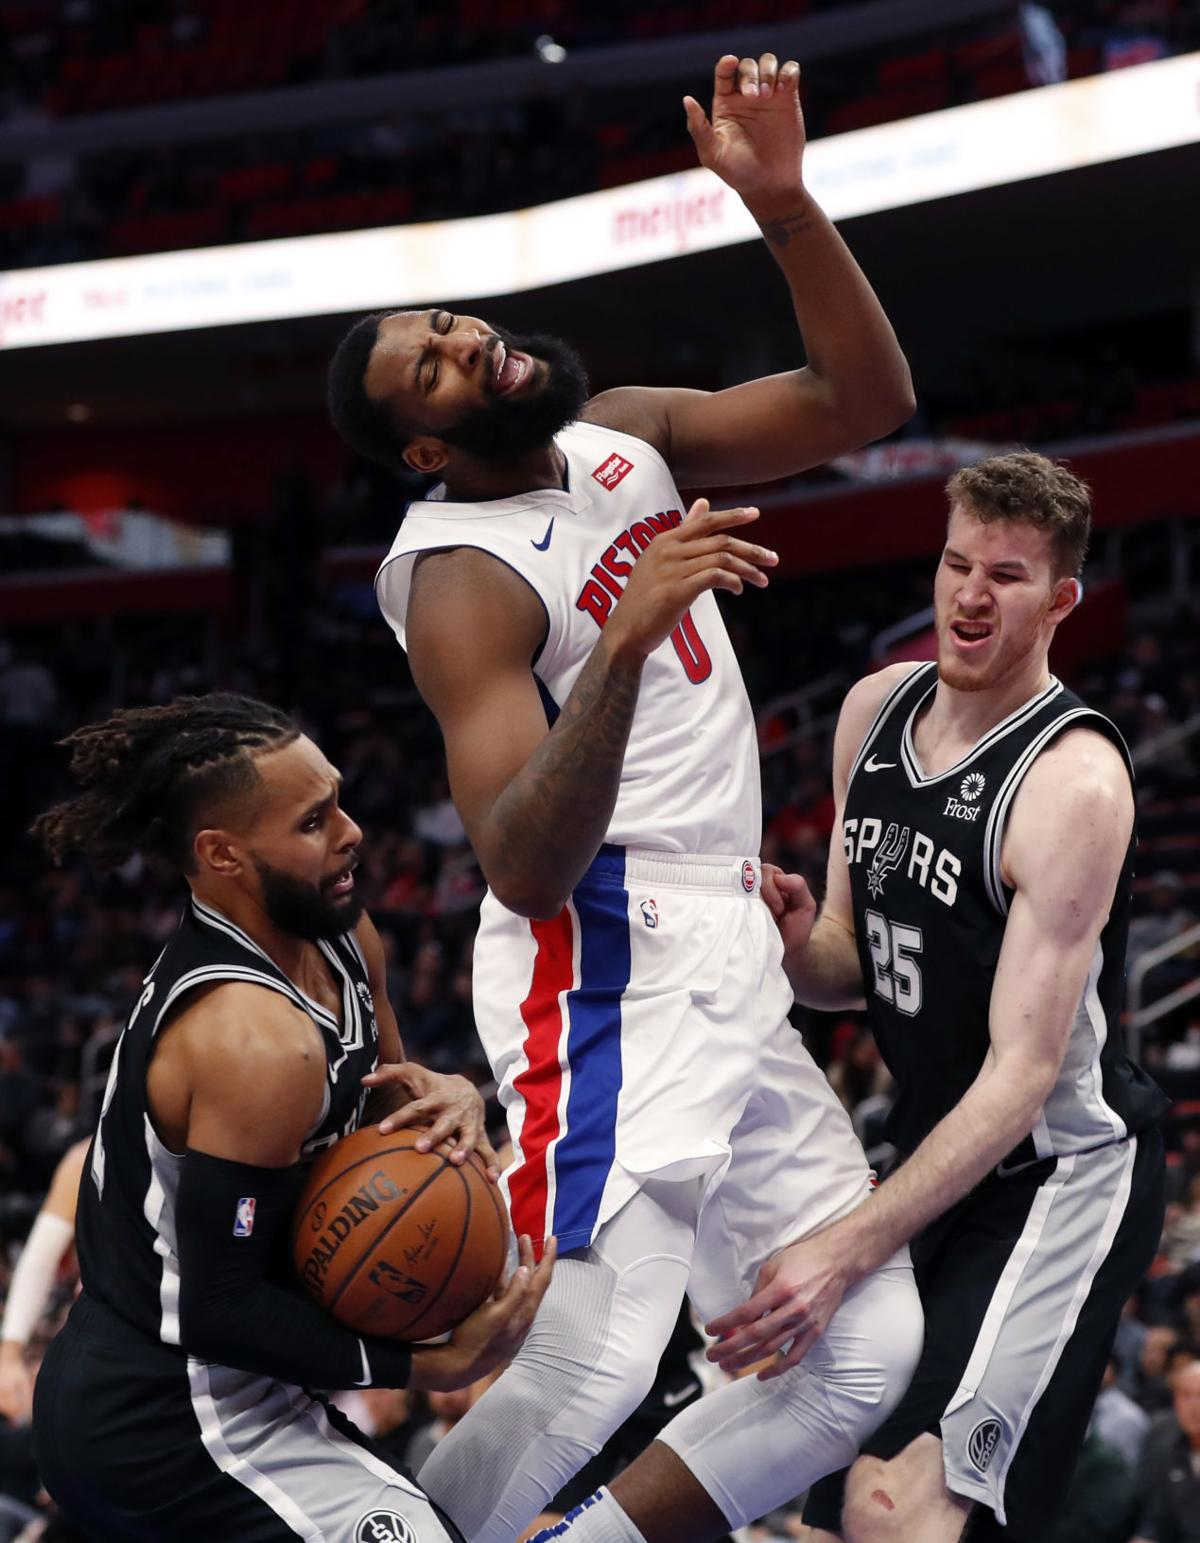 APTOPIX Spurs Pistons Basketball